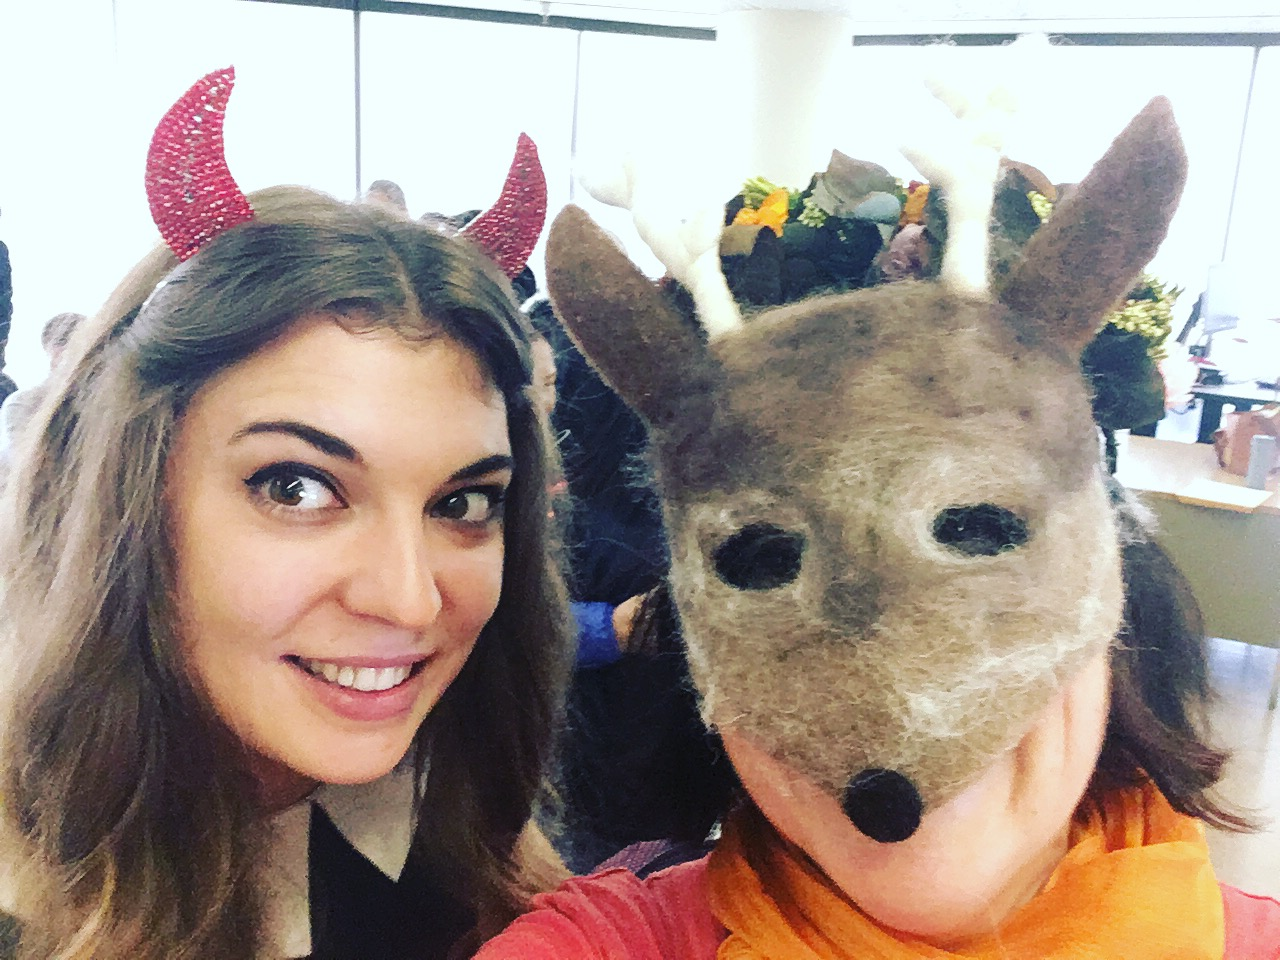 Selfie with my student Ksenia on Halloween last year.